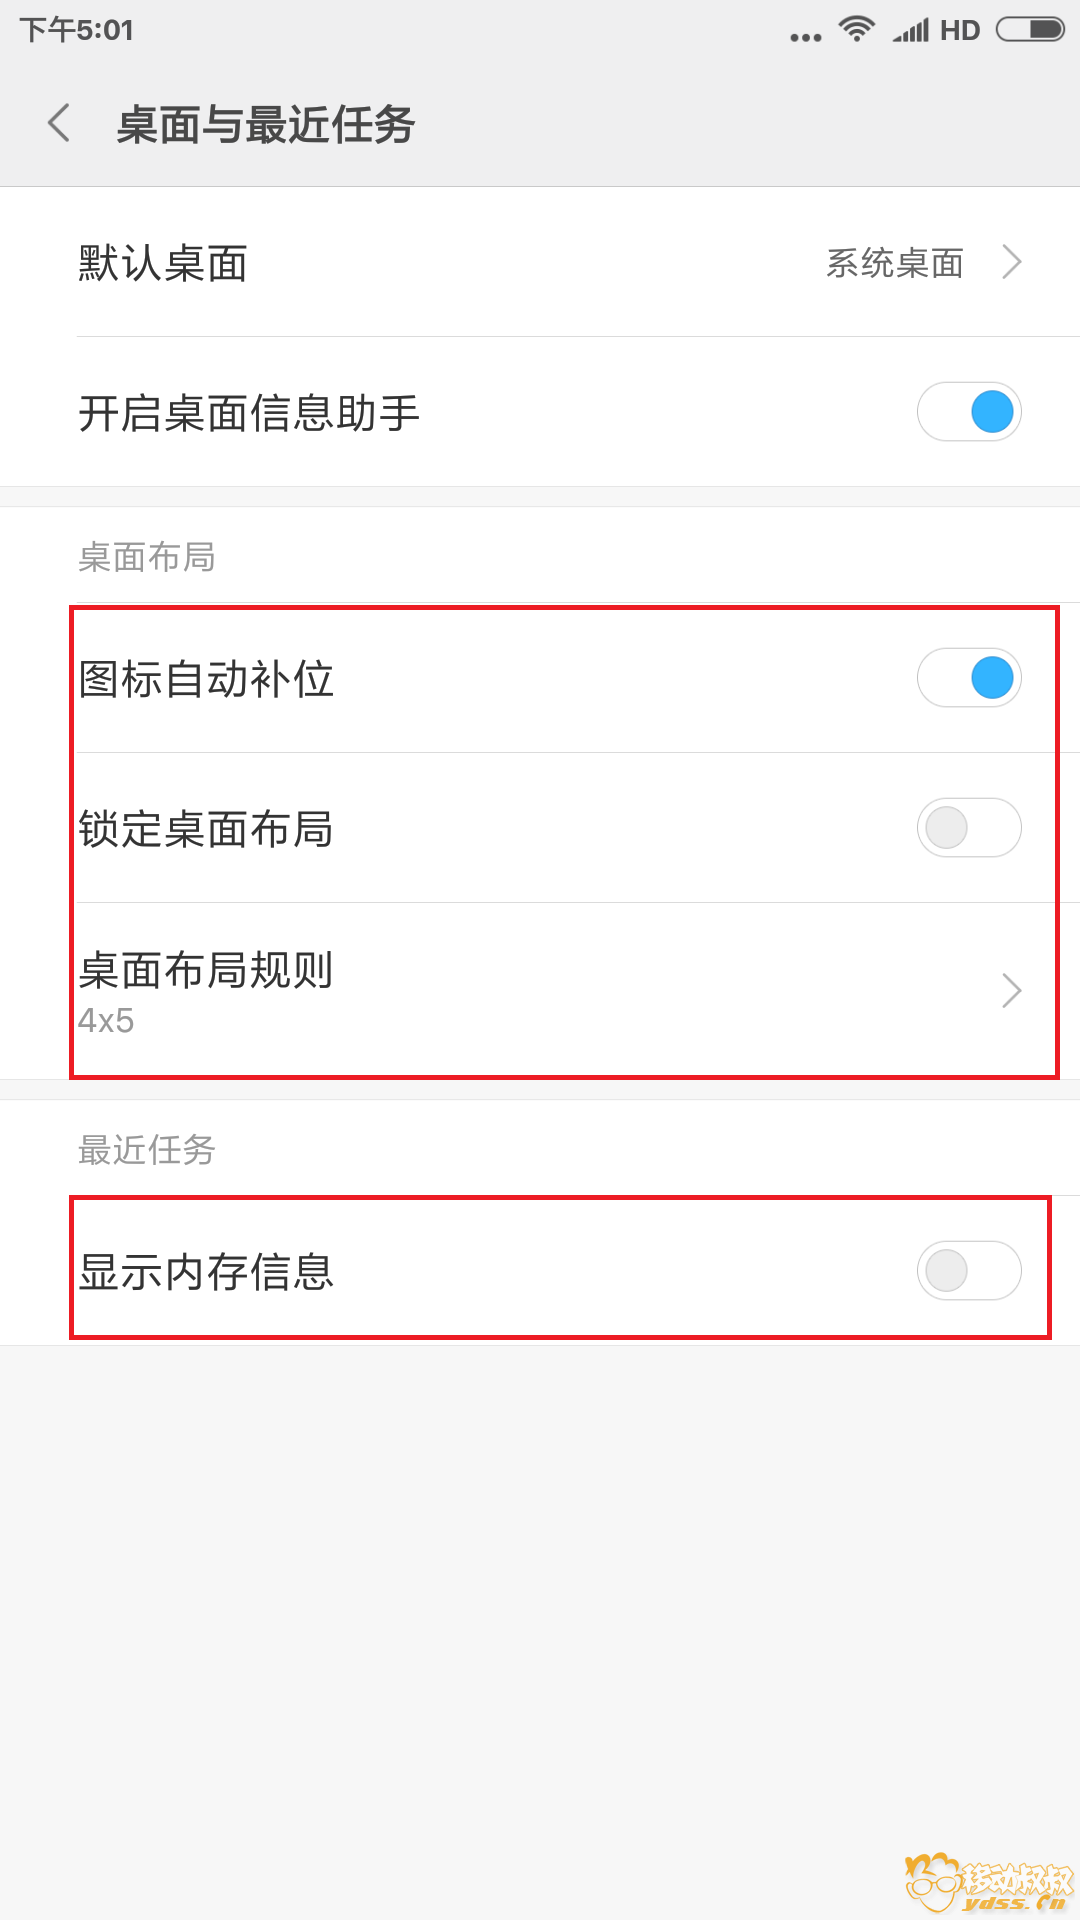 Screenshot_2018-05-19-17-01-31-001_com.miui.home.png